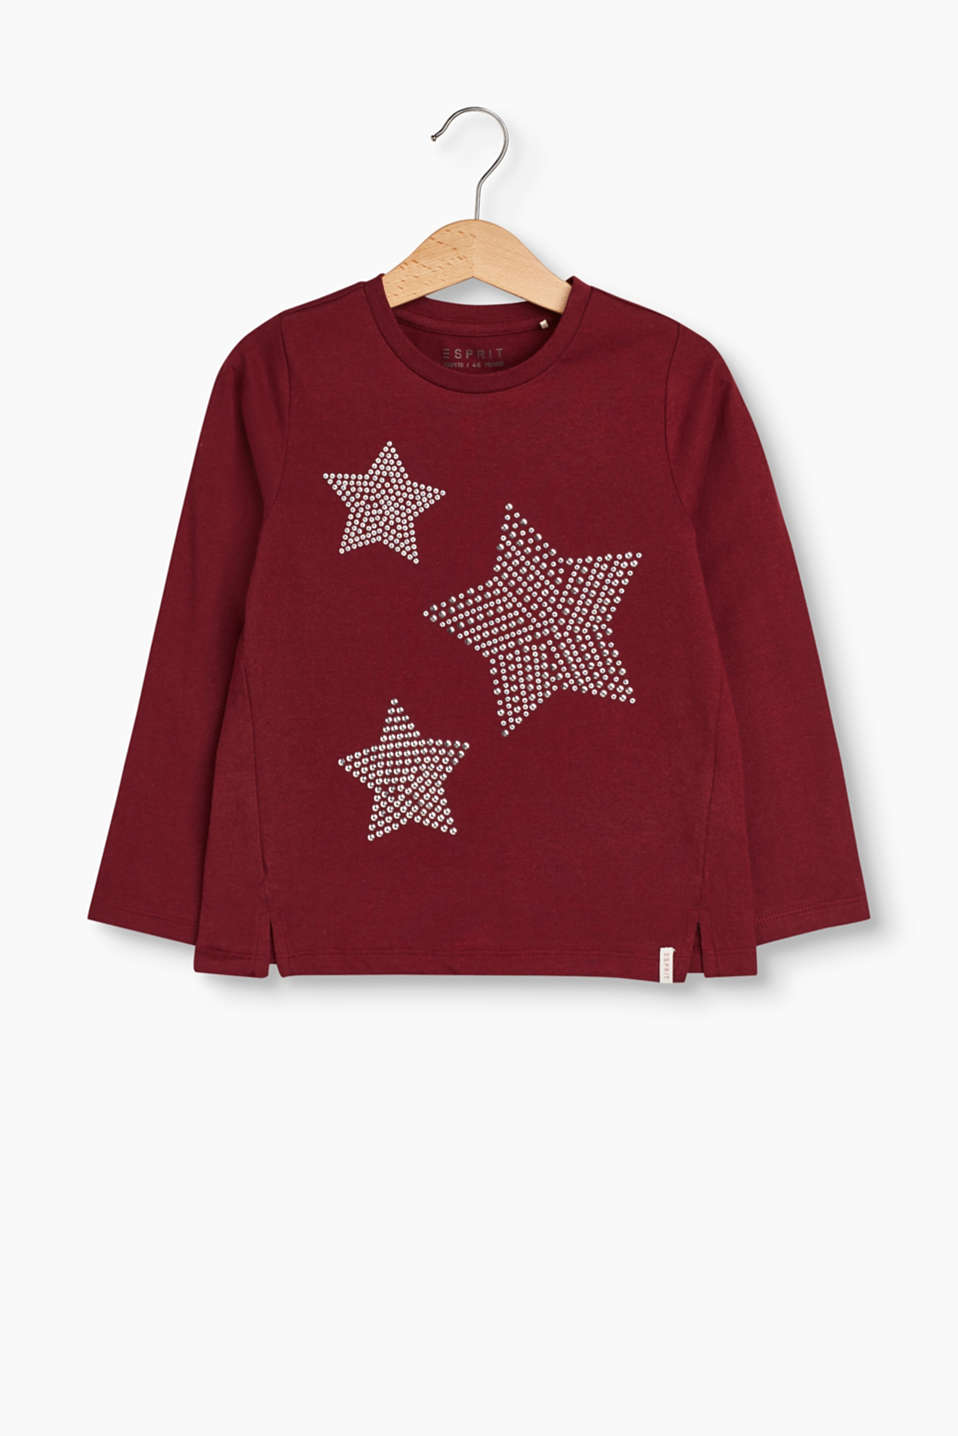 Shine like a star! This long sleeve top fantastically fuses top comfort with a pretty and charming, girlie vibe.